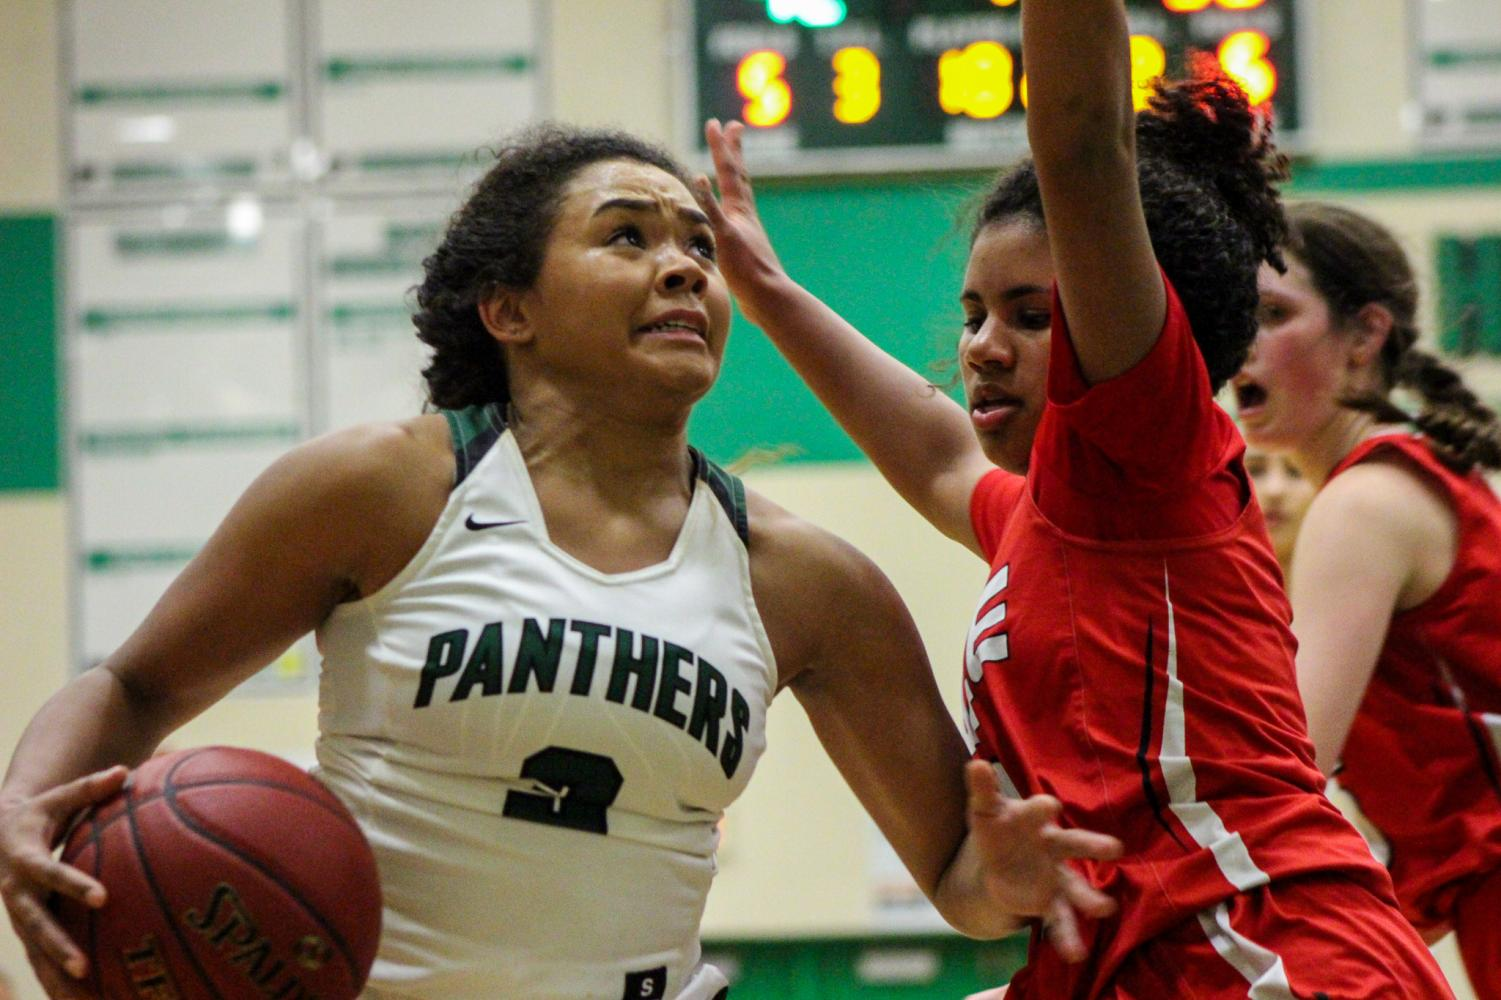 Senior Aliyah Meyers protects the ball from her opponent as she goes for a layup.